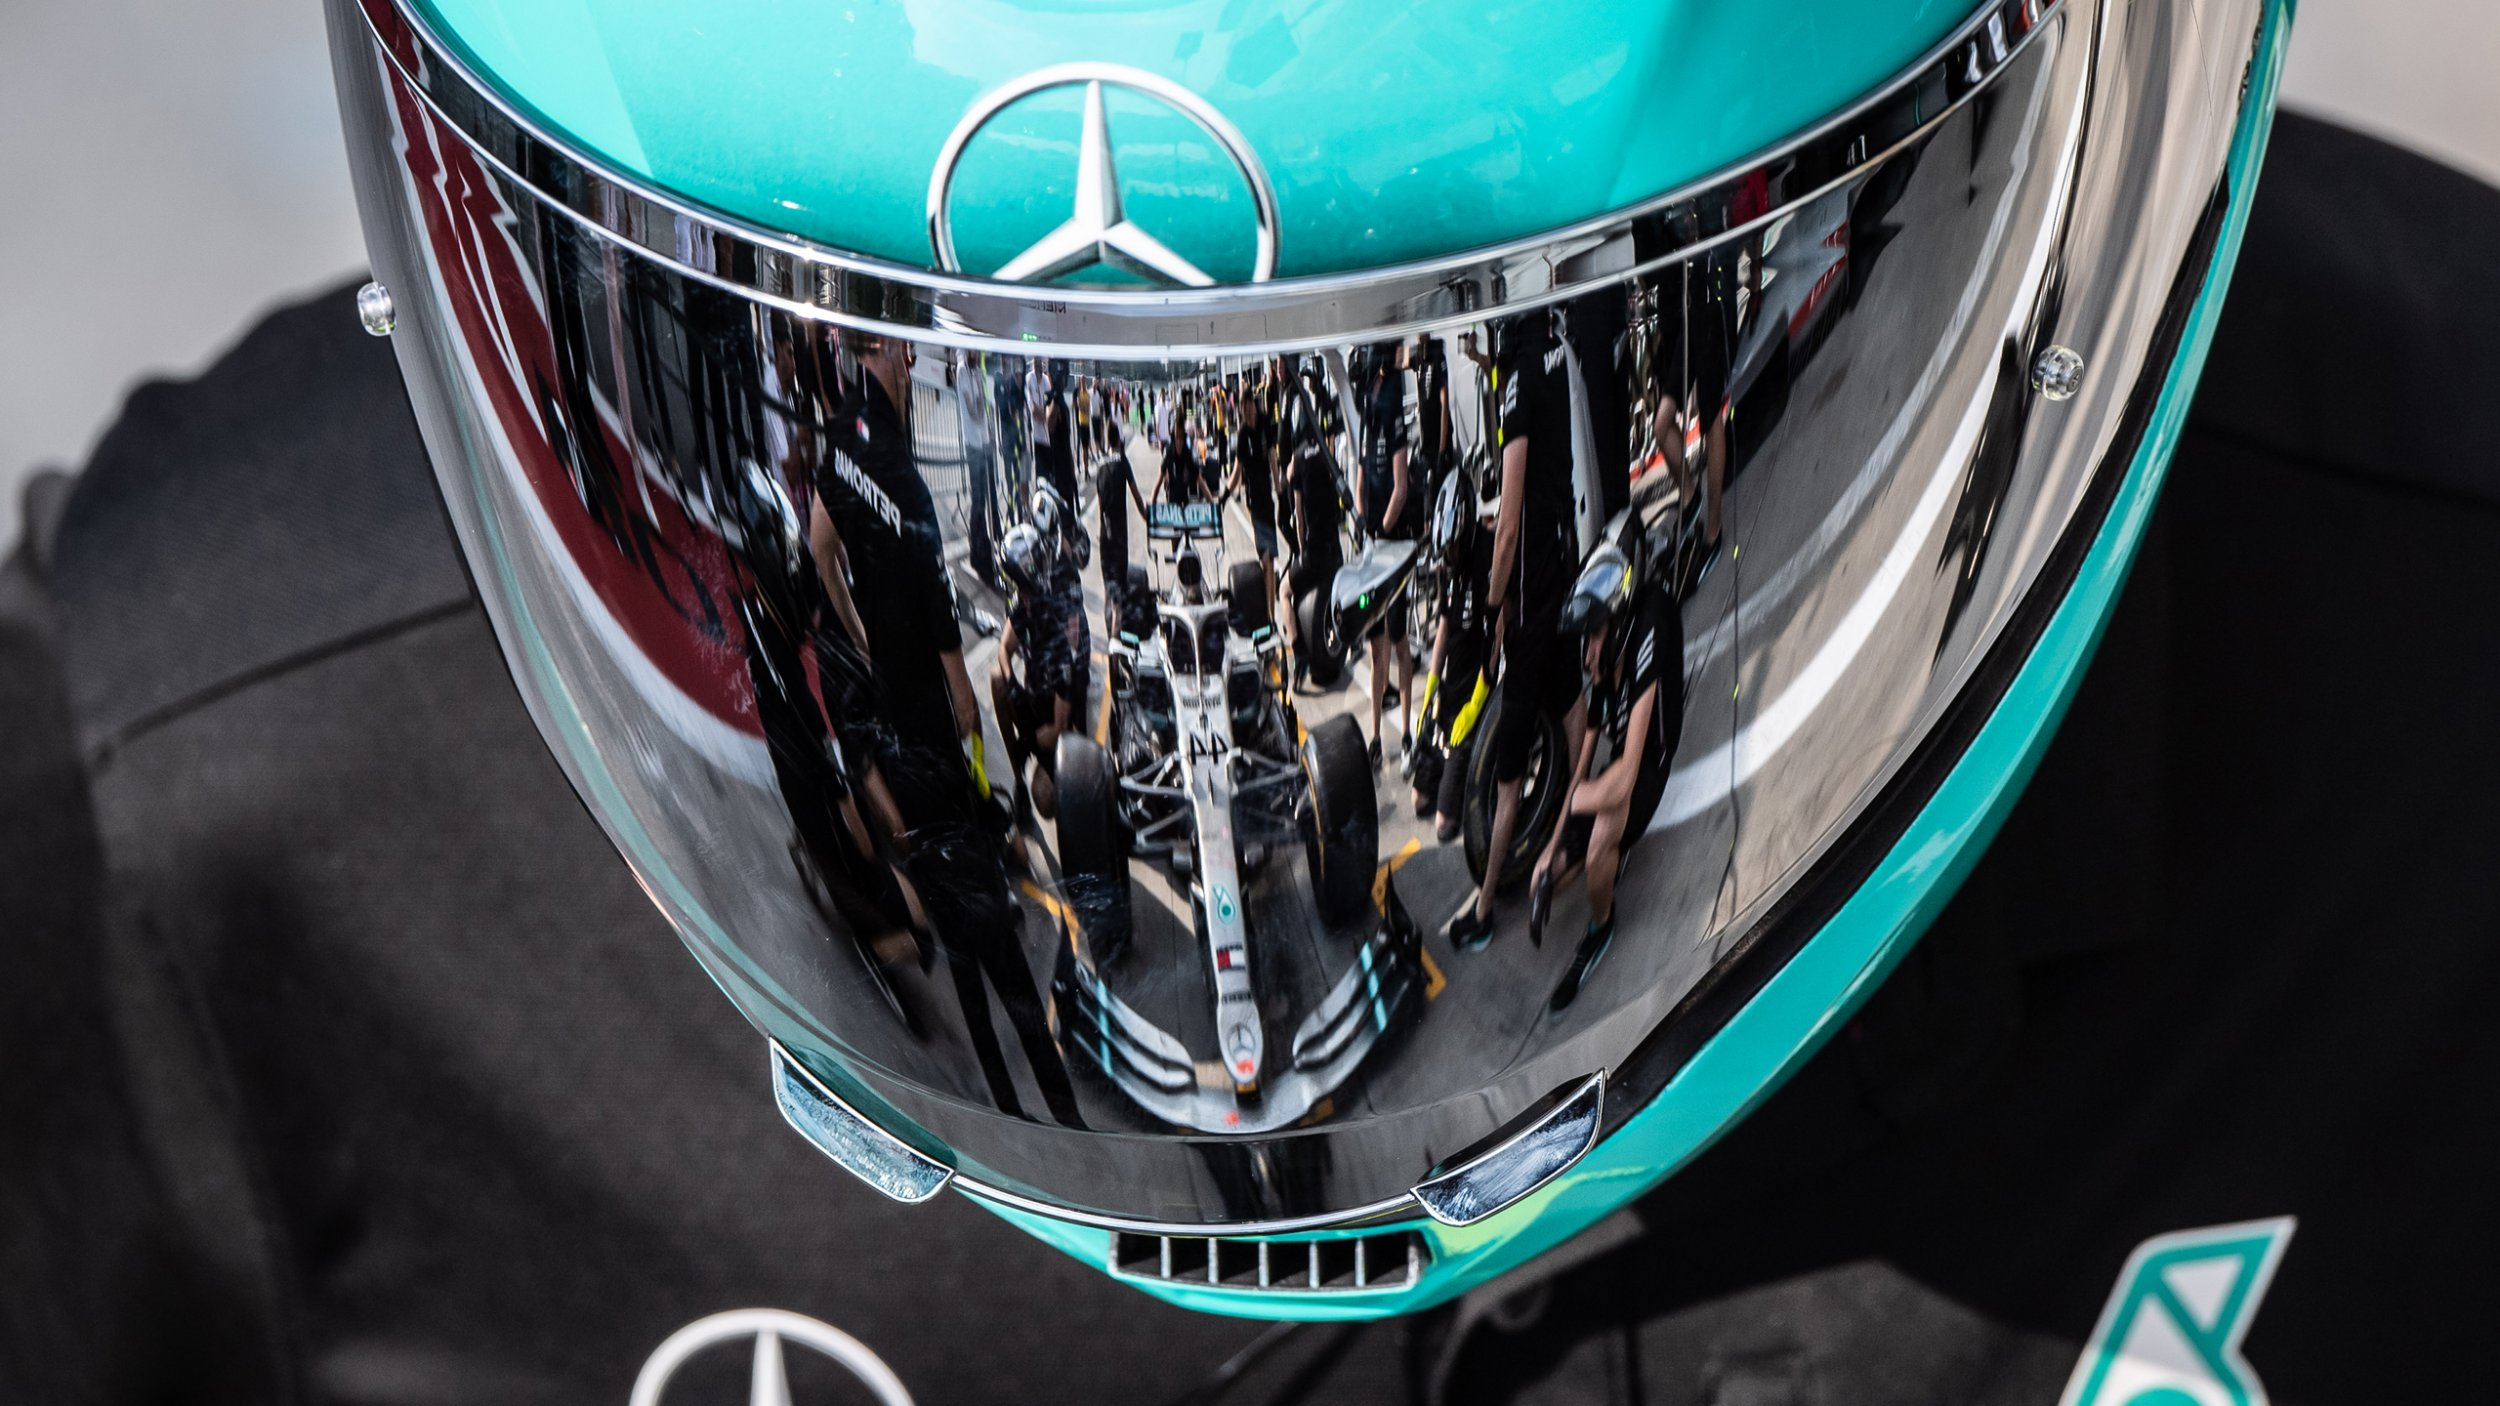 https://cloud.mb-lounge.com/files/HQ-Events/Motorsport/Formel%201/event-calendar-mercedes-benz-formula-1-grand-prix-vietnam-2560x1440.jpg